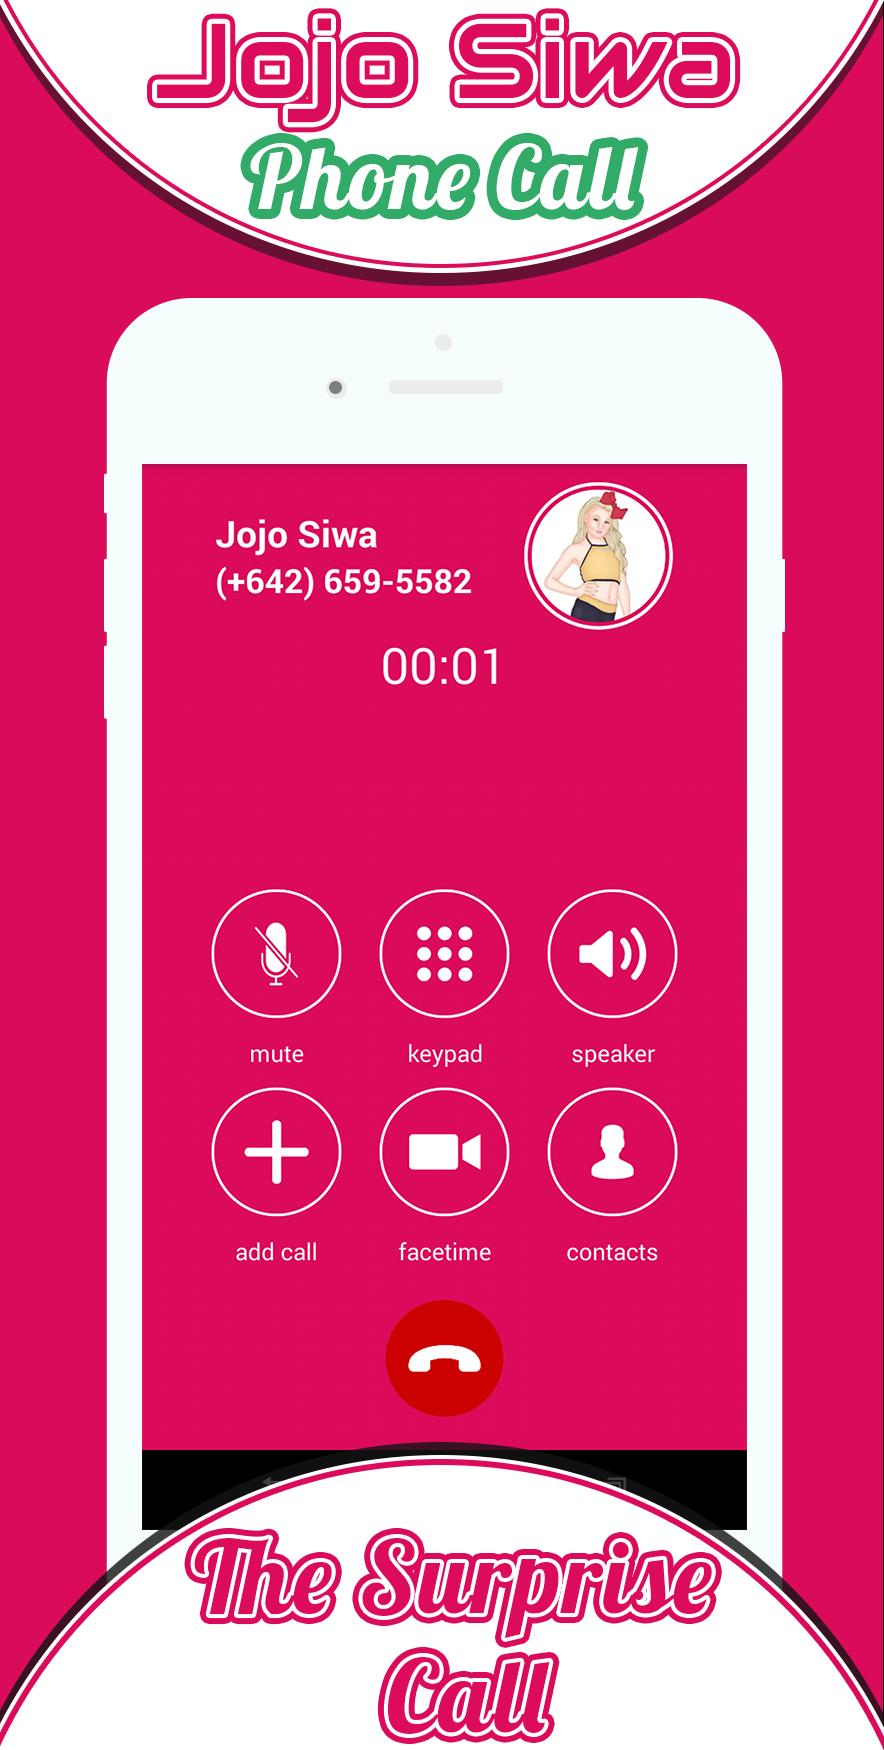 Phone Call From Jojo Siwa For Android Apk Download